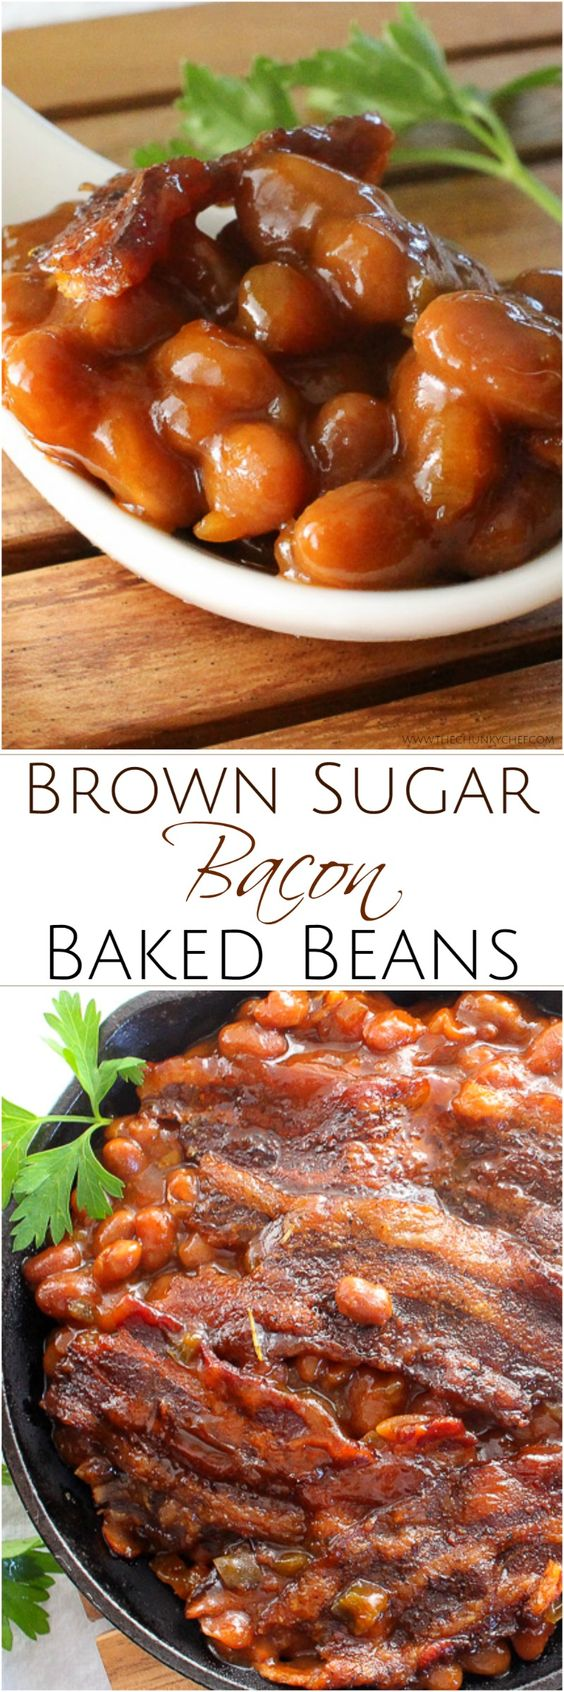 ... Sugar and Bacon Baked Beans | Recipe | Baked Beans, Beans and Bacon